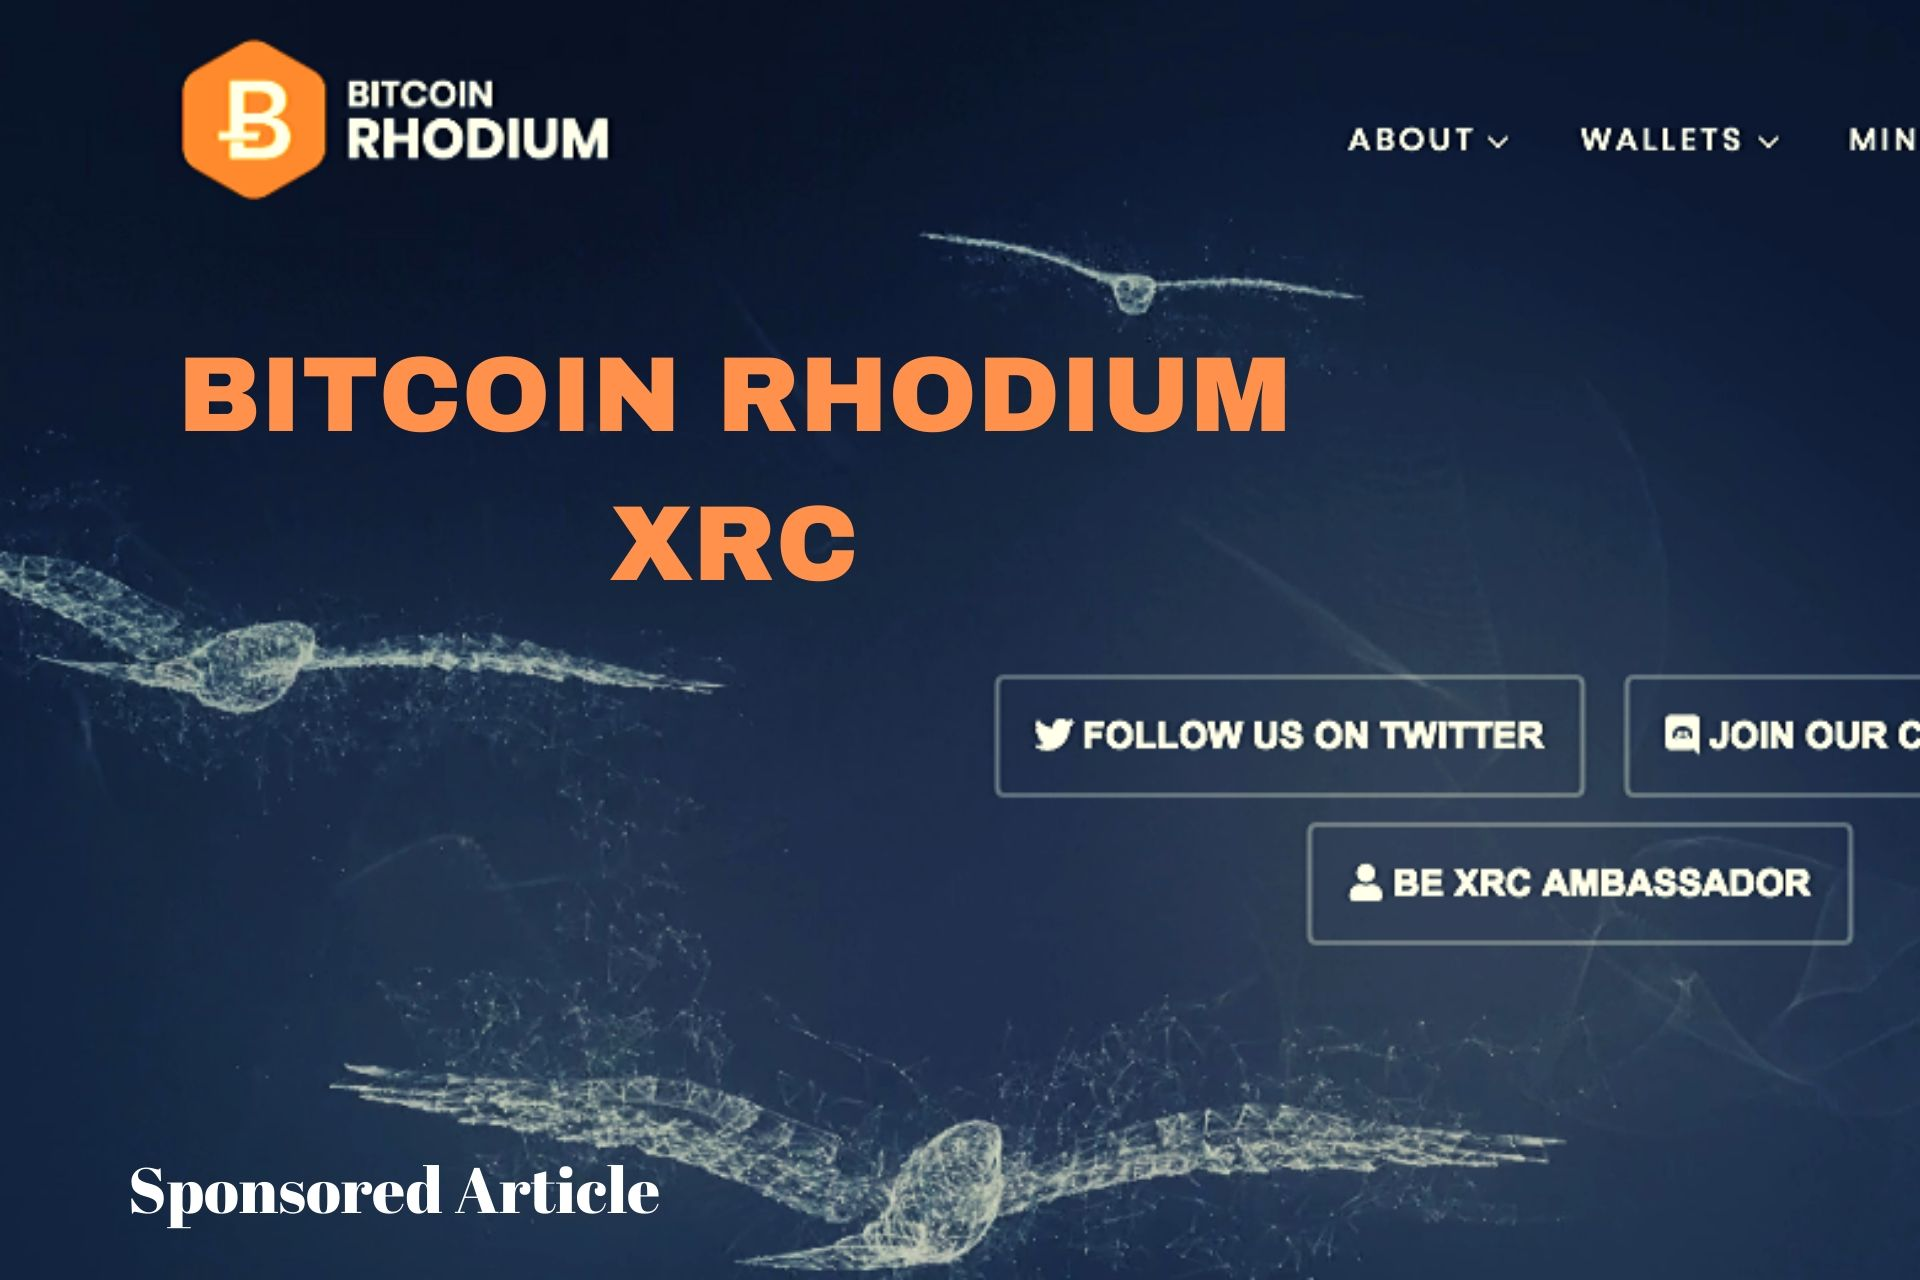 Bitcoin Rhodium: Everything You Need to Know